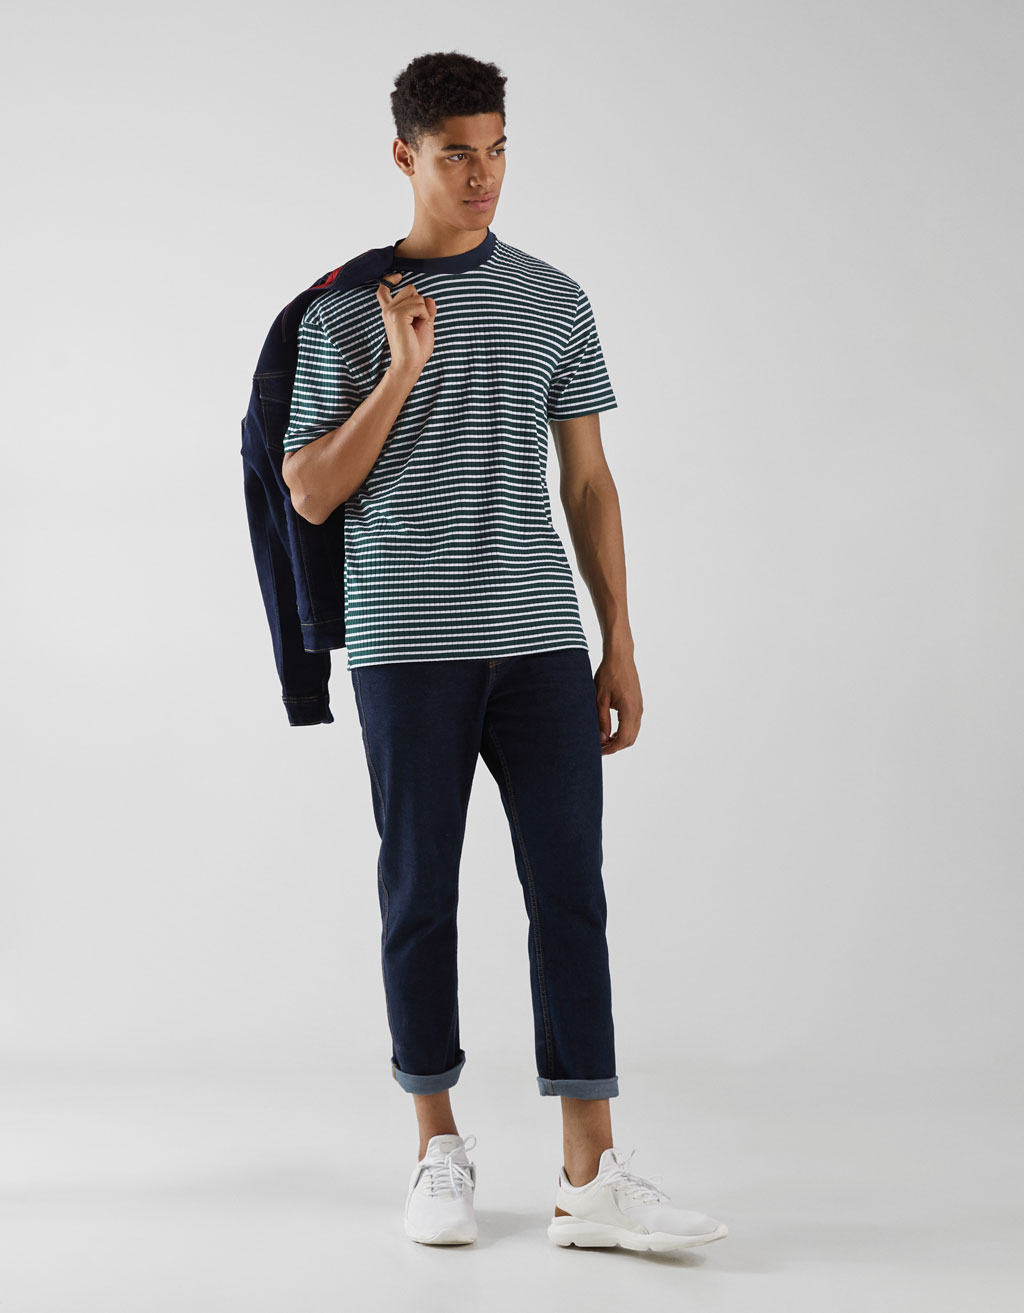 Ribbed T-shirt with a striped print